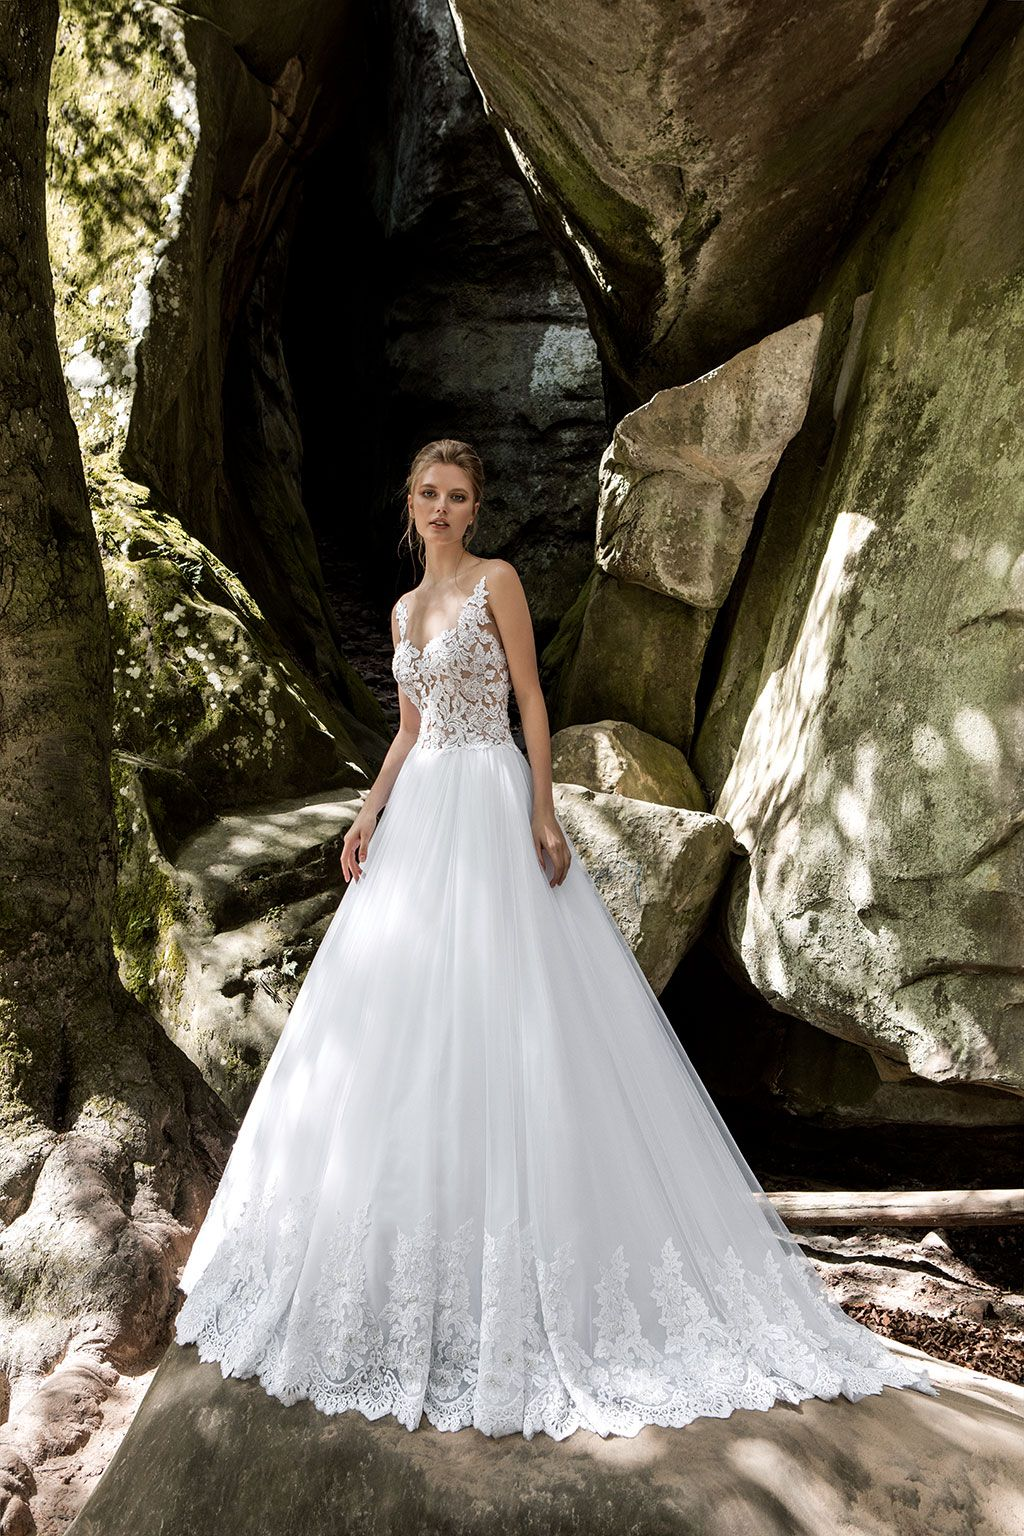 Lace ball gown wedding dresses  Viero Bridal Couture wedding dresses  wedding dresses lace  ball